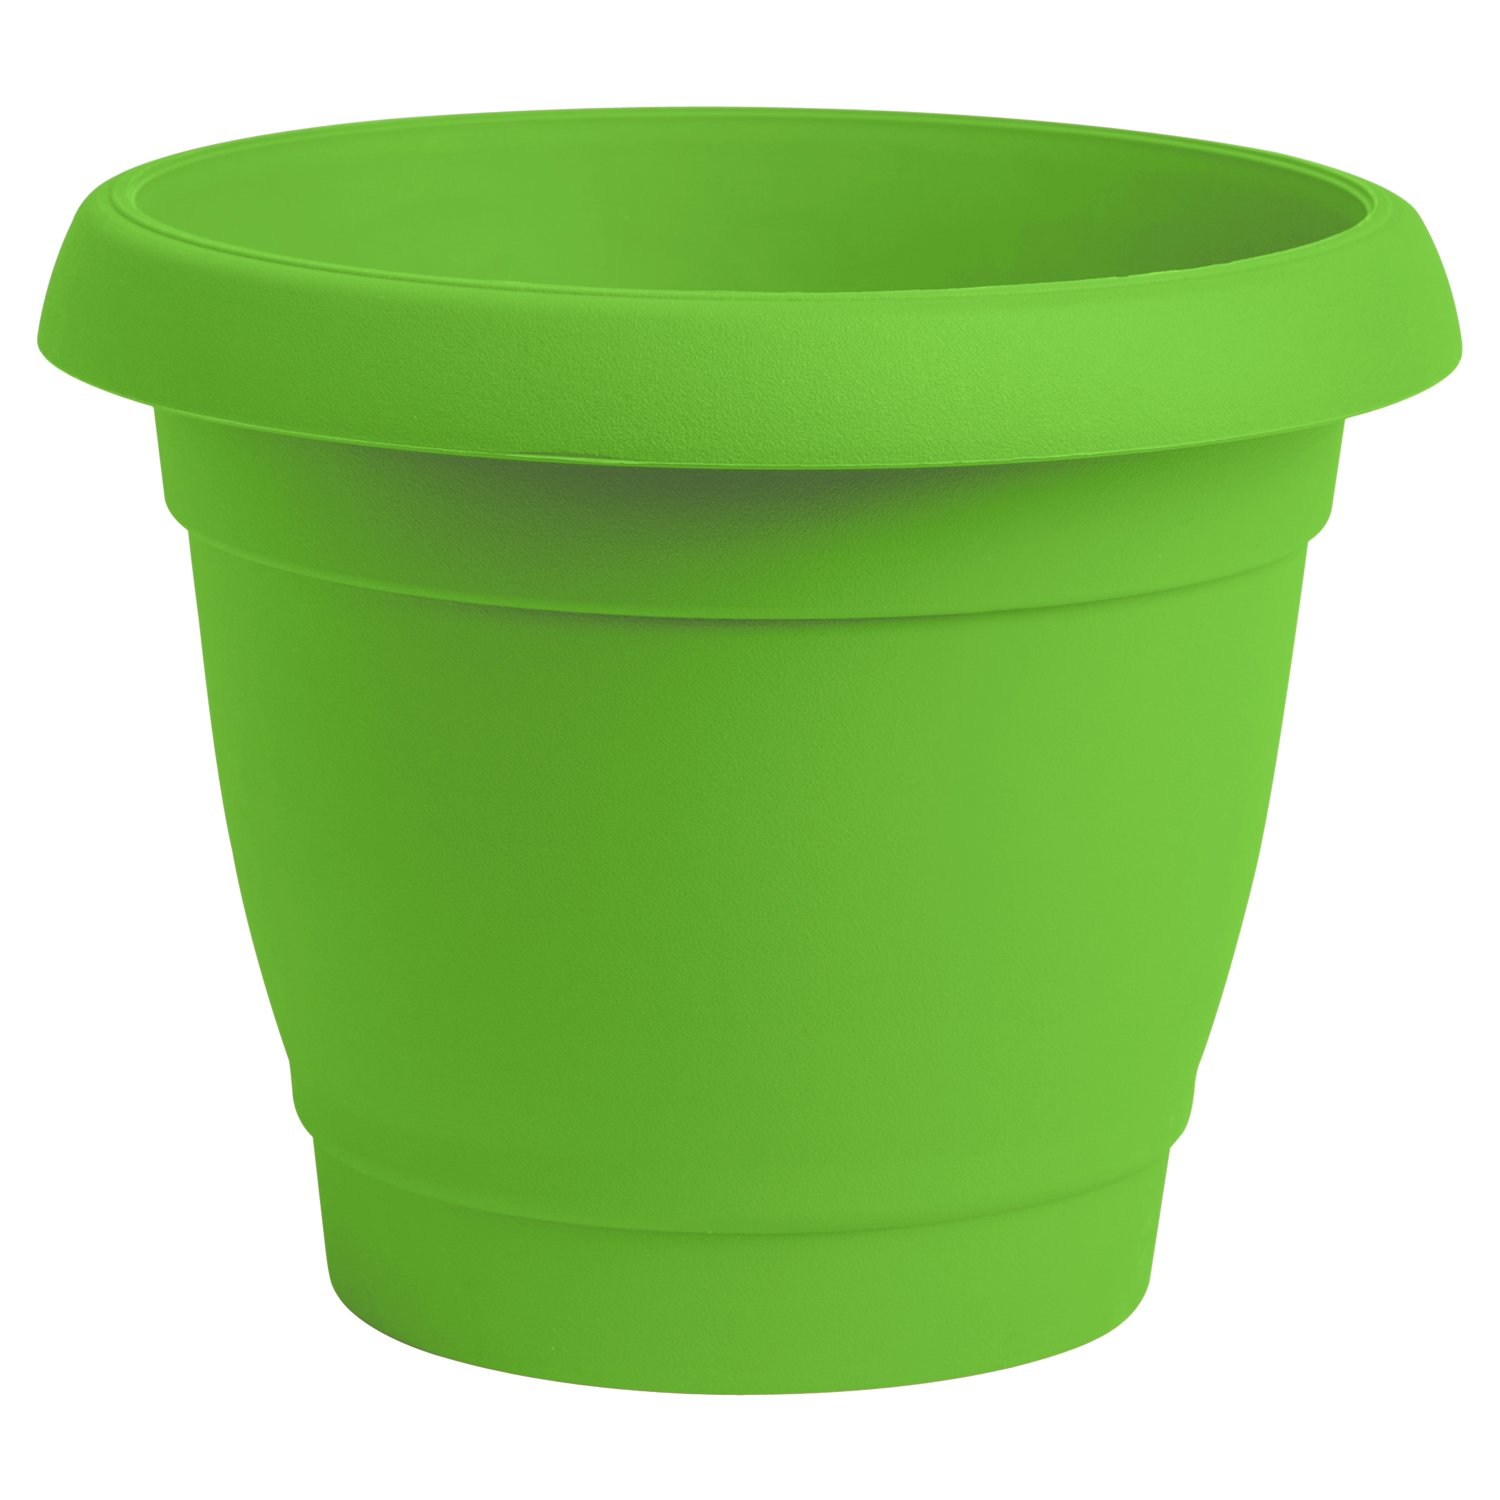 ALMI Carmel Round Planter 9 Inch, Plastic Rounded Pot For Garden, Elegant Shaped Flower Tree, Tapered Planters For Plants, Small Trees, UV Resistant Paint, Indoor & Outdoor, Light Green